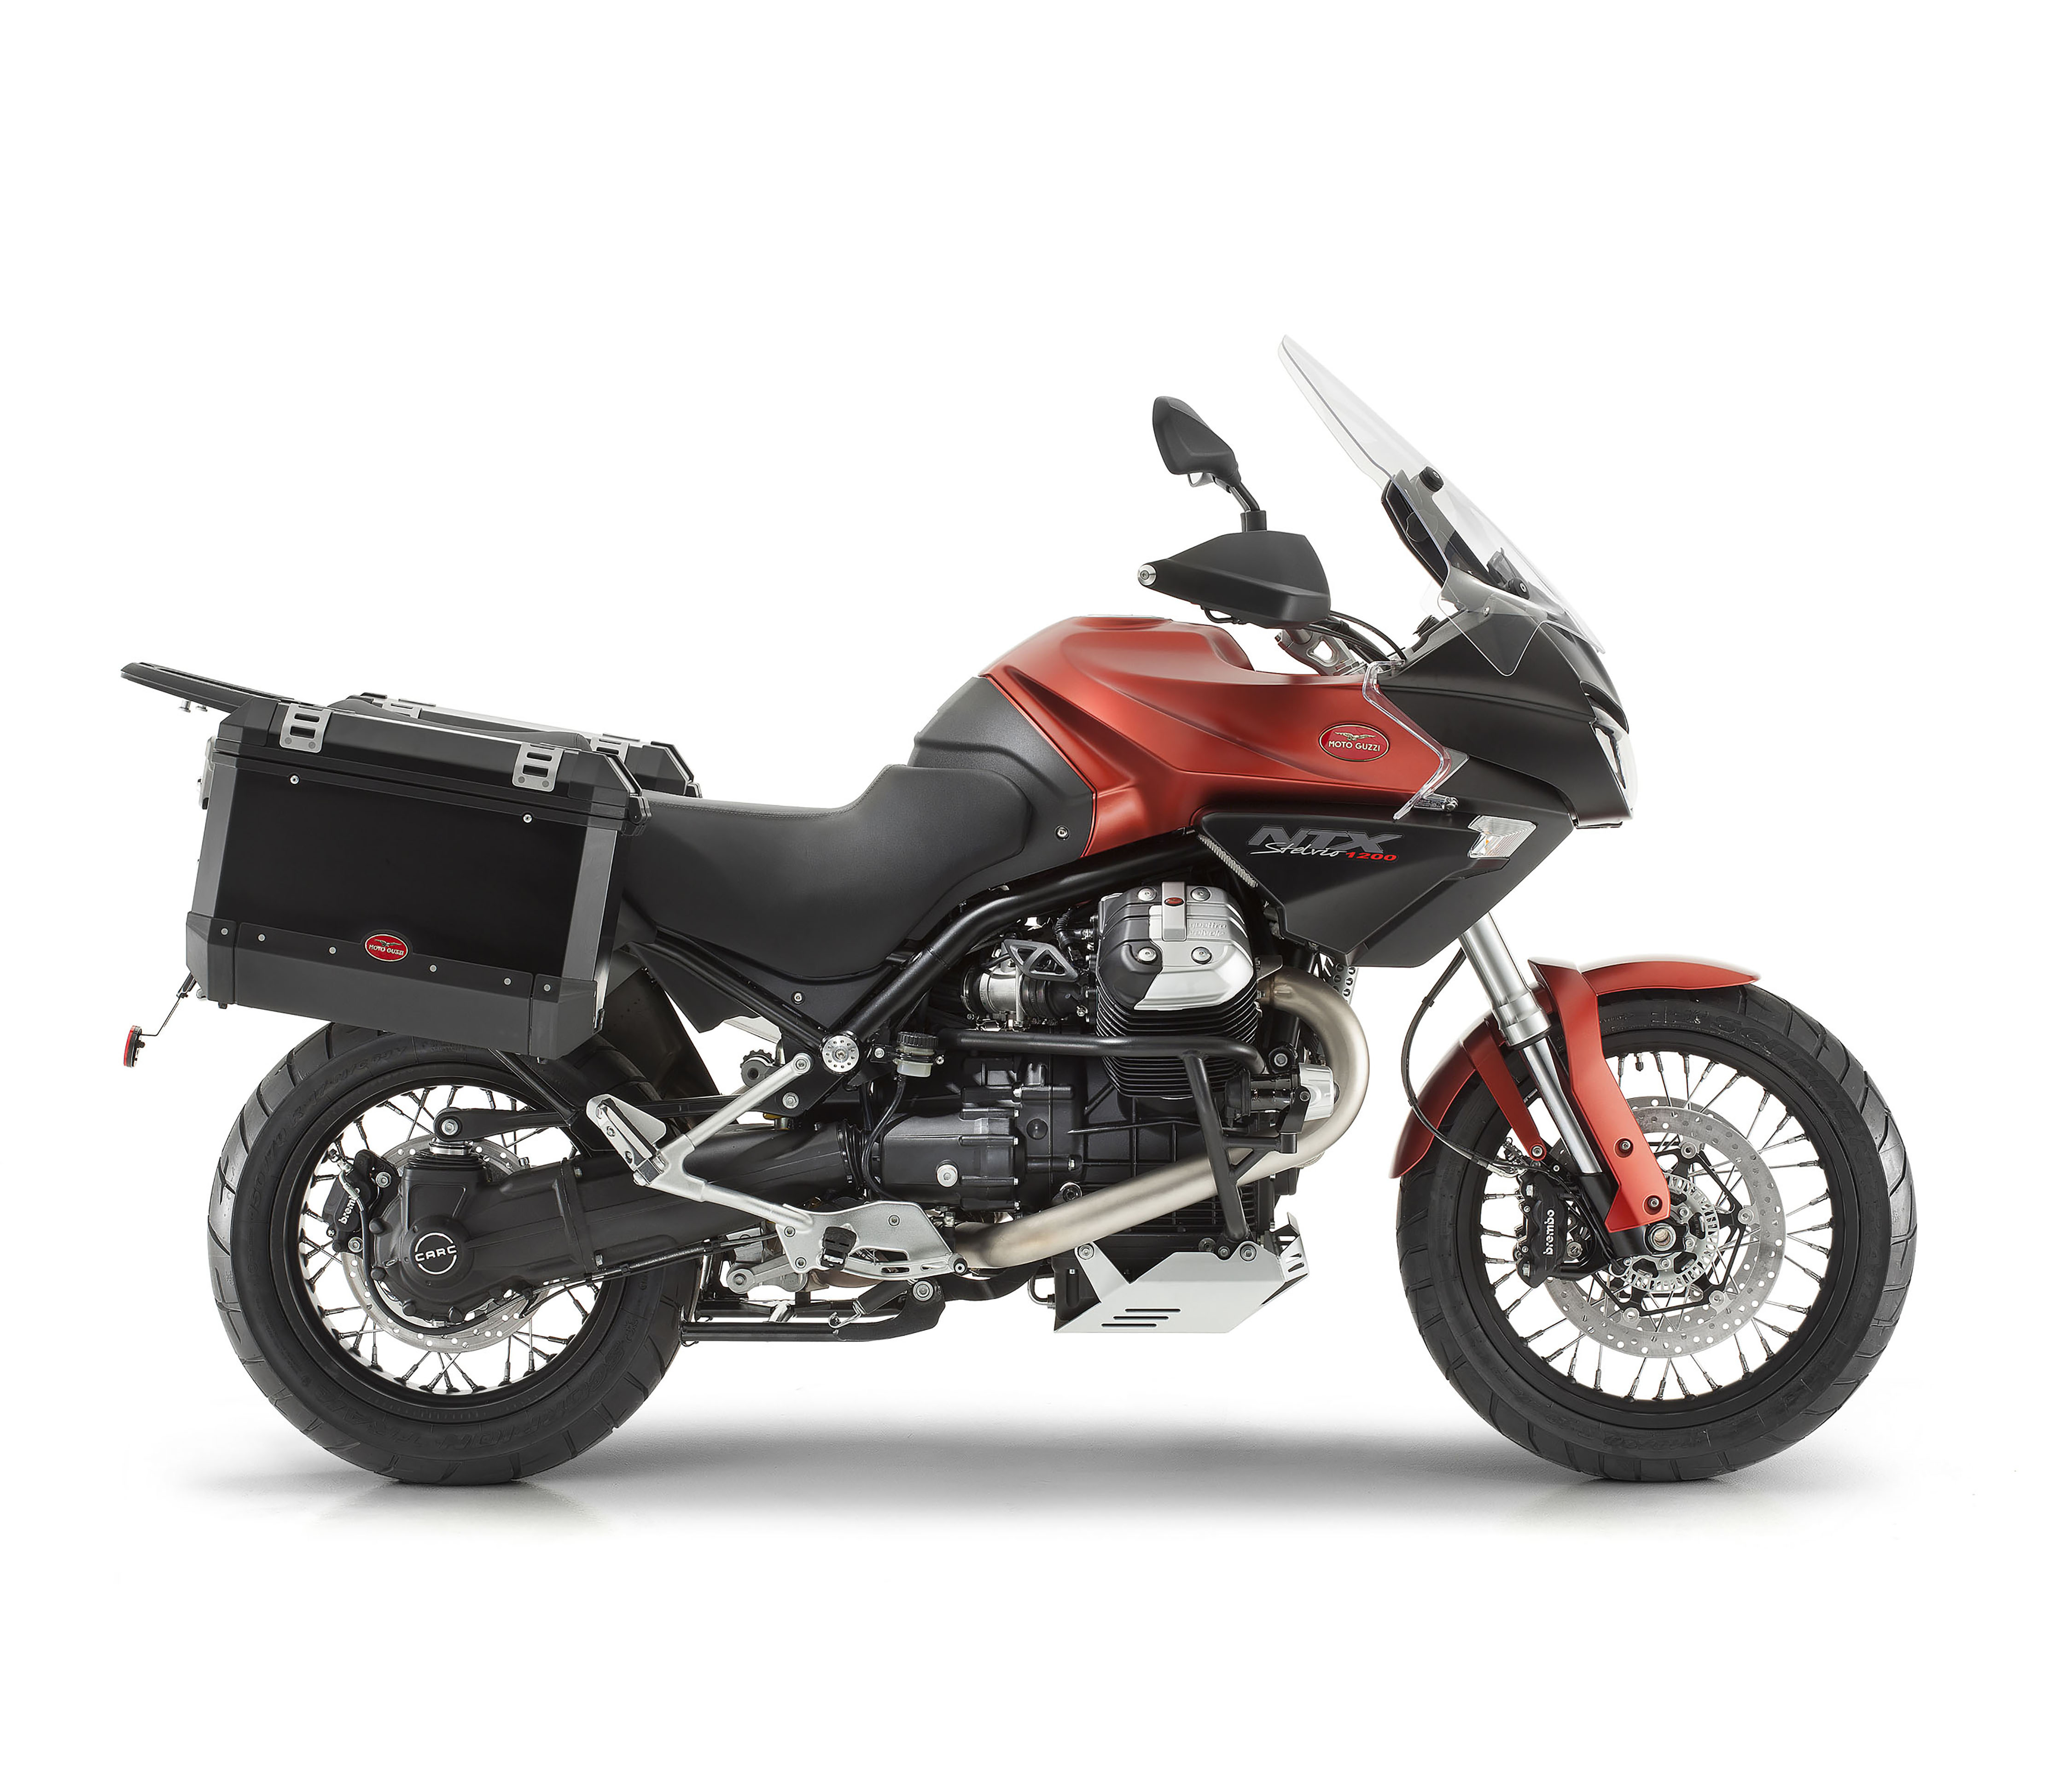 Moto Guzzi Stelvio NTX (Red) full